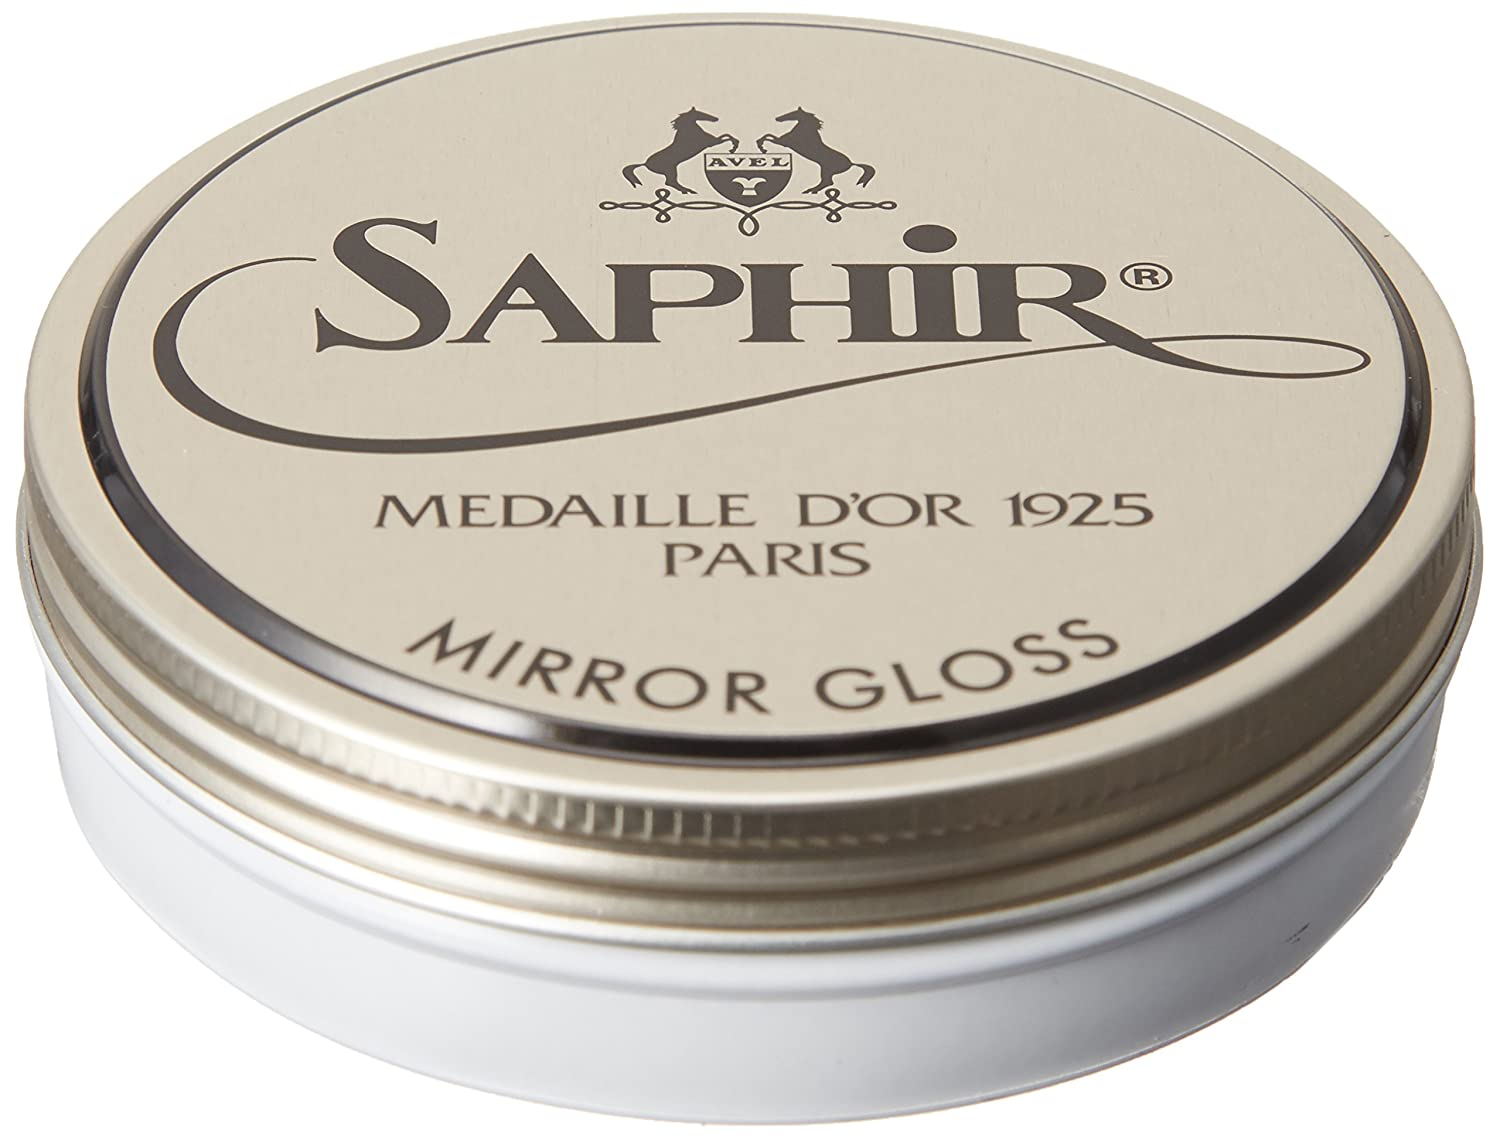 Saphir MDO Espejo Brillo 75ml 9551013017